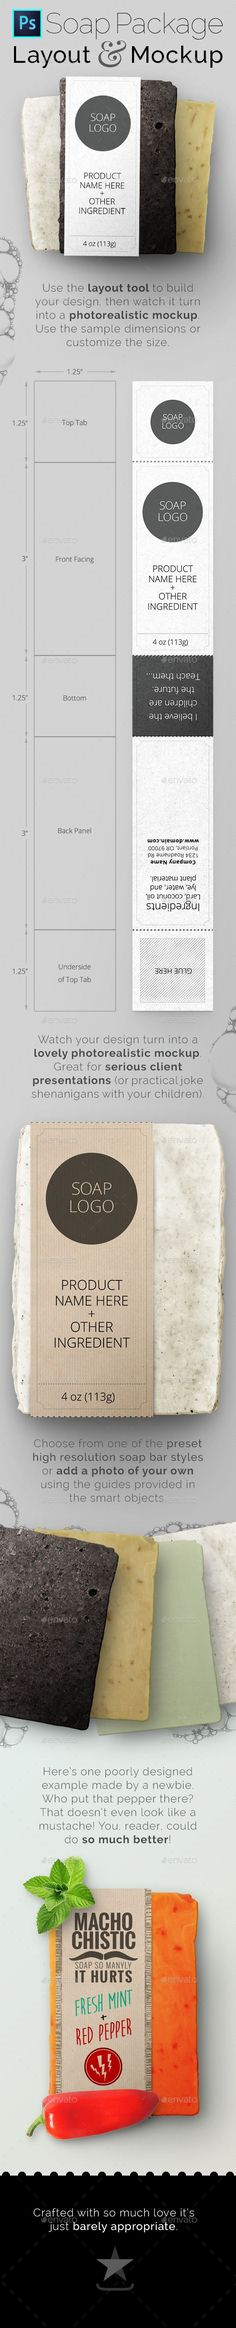 Soap Bar Package Tool and Mockup. Download here: graphicriver.net/...